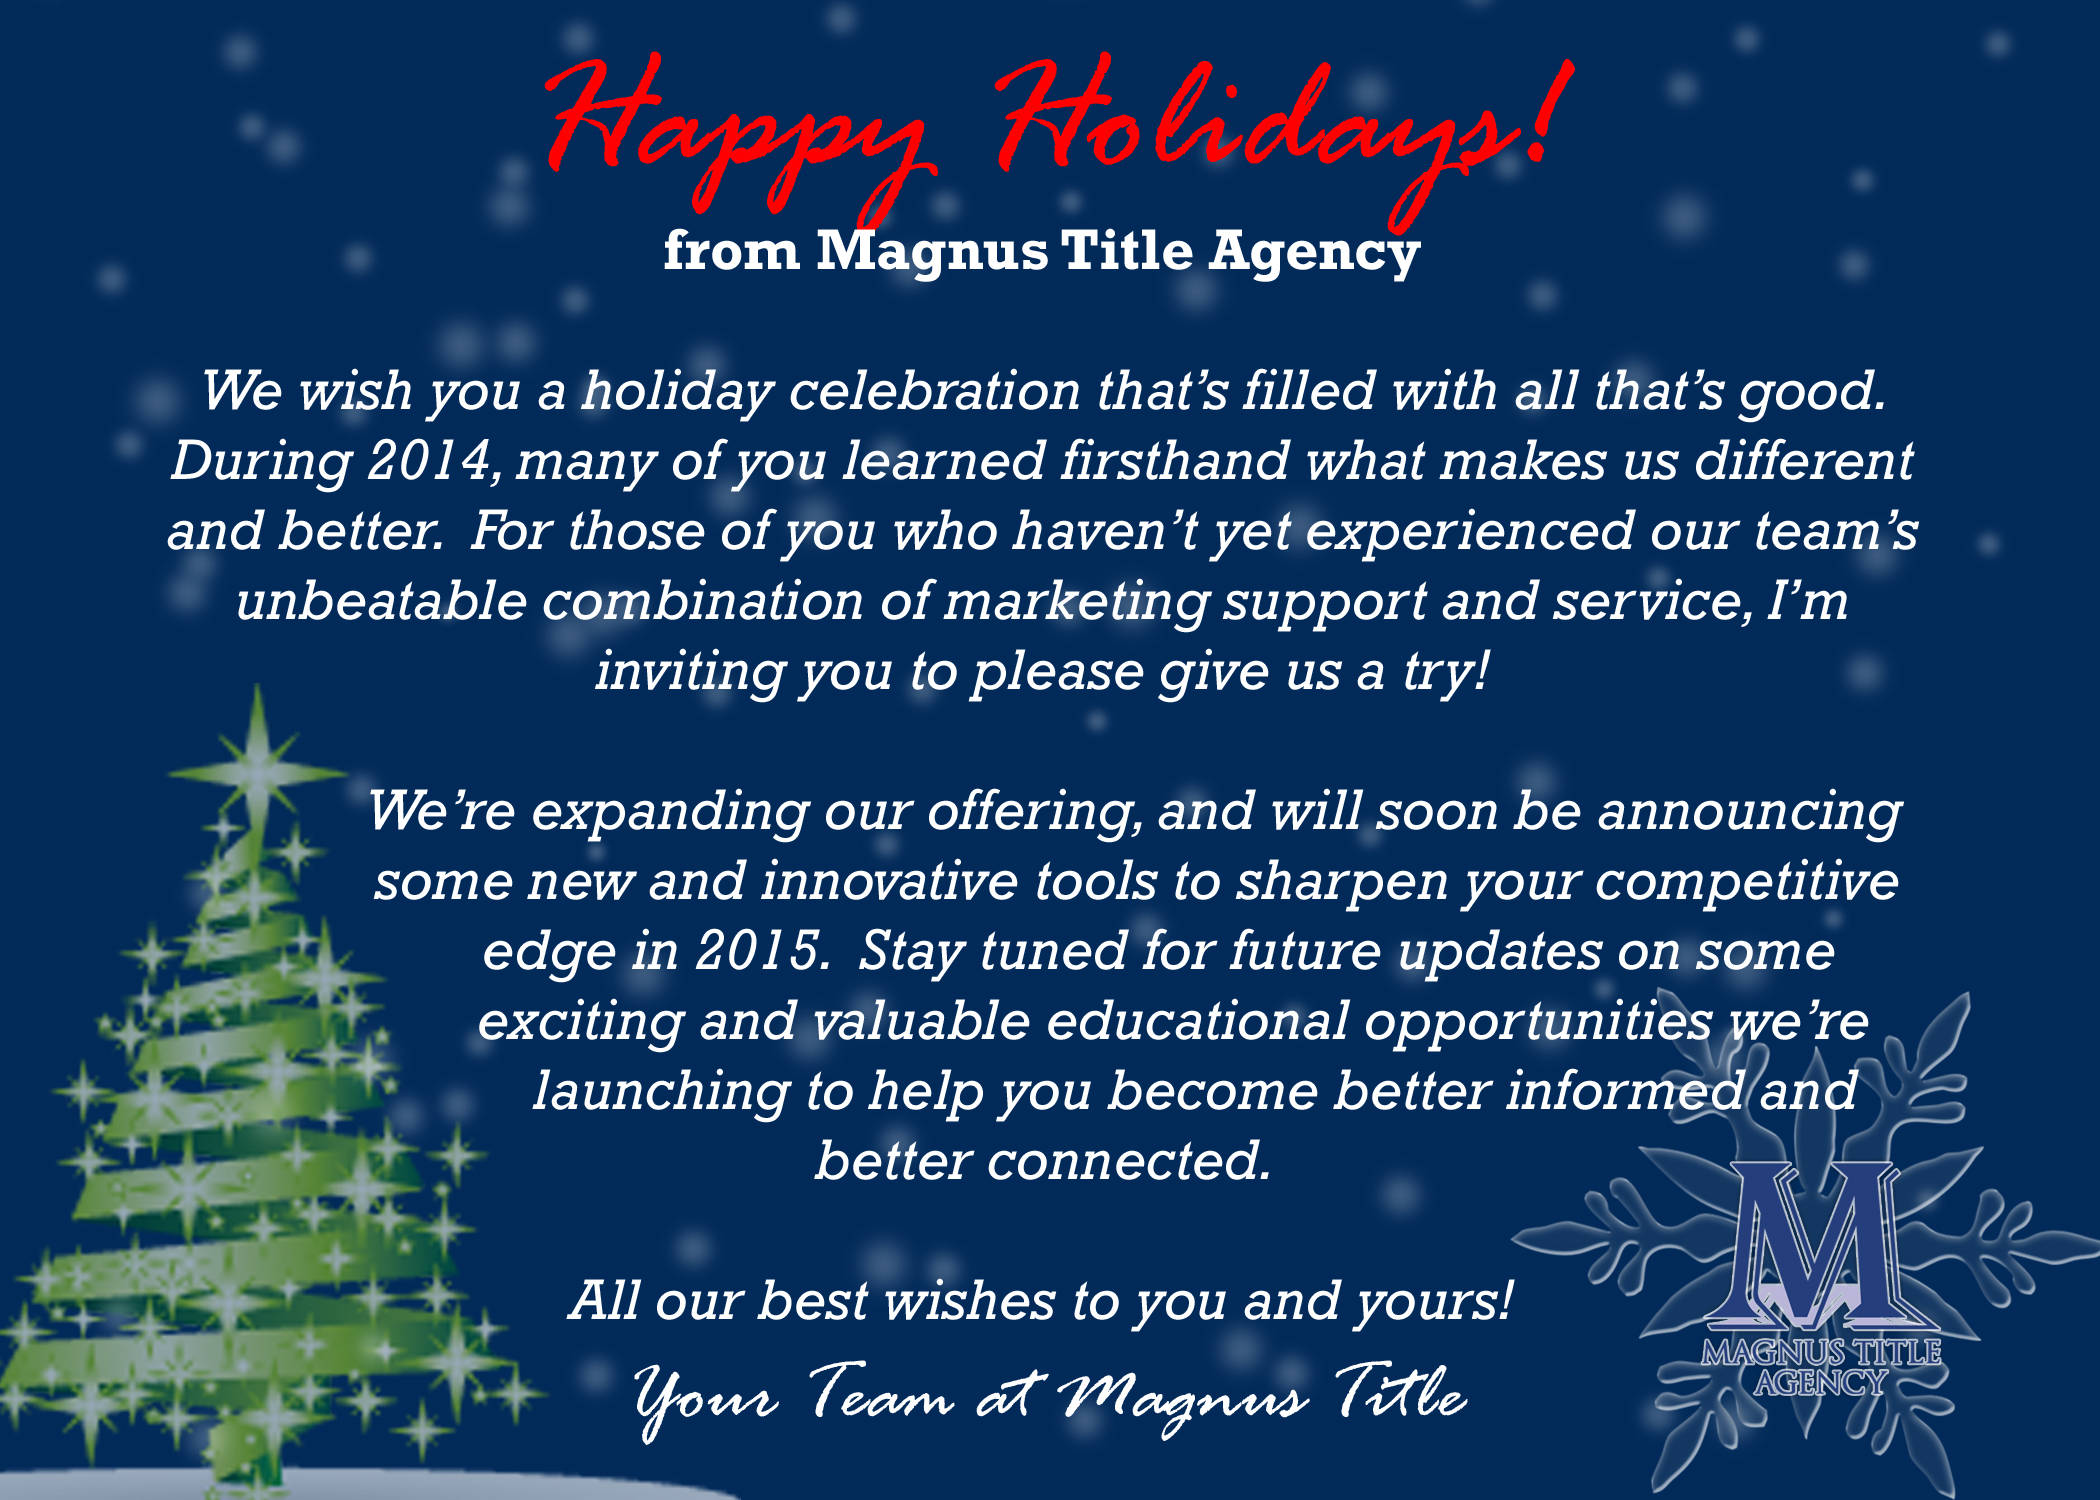 Holiday Greetings And An Invitation For You